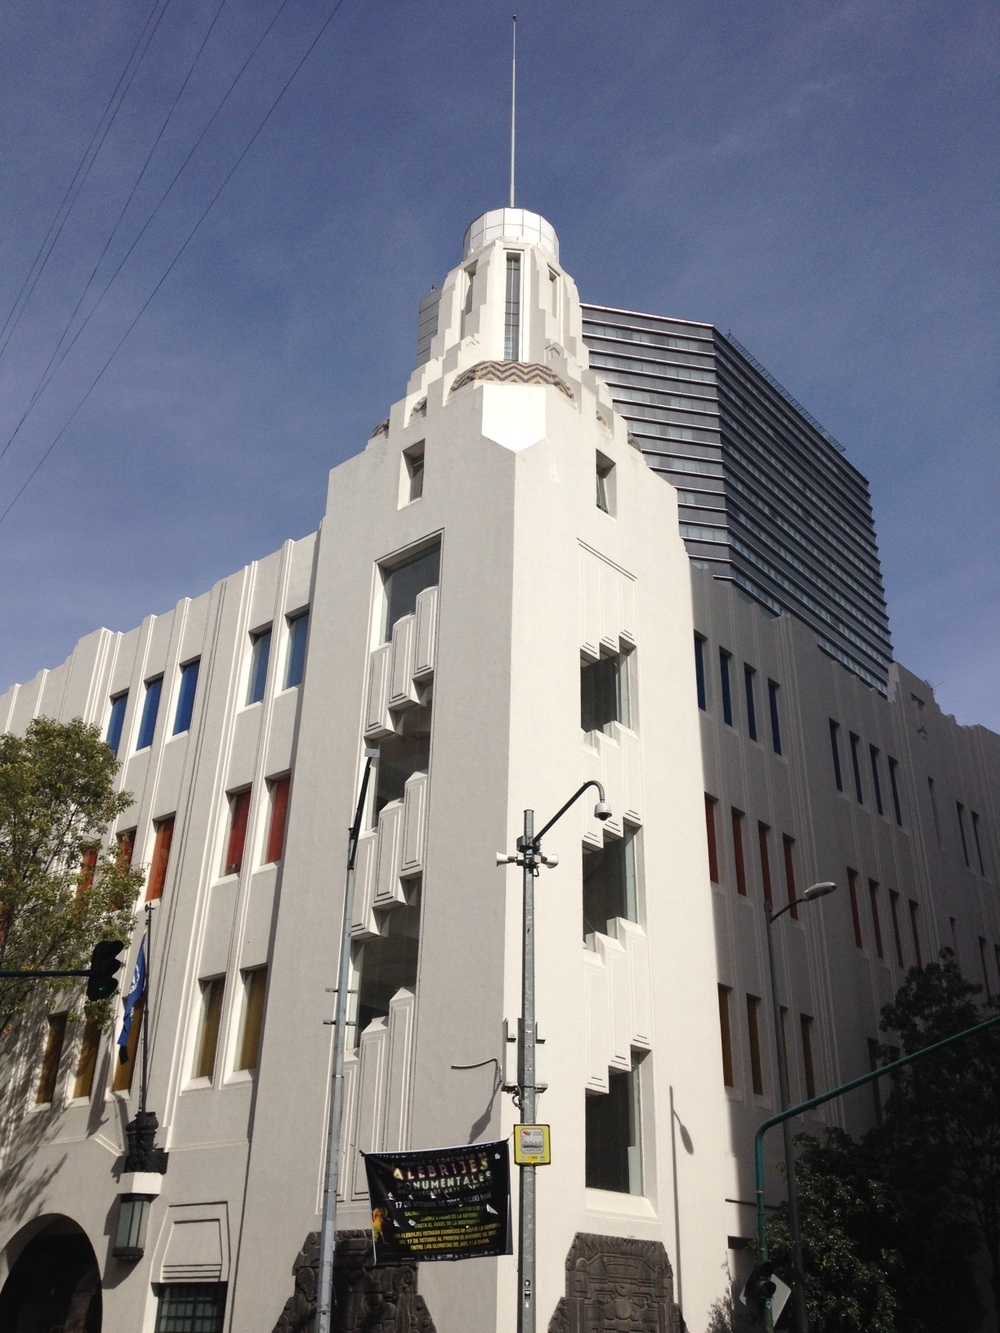 The classic art deco building was originally the Fire Department Headquarters.